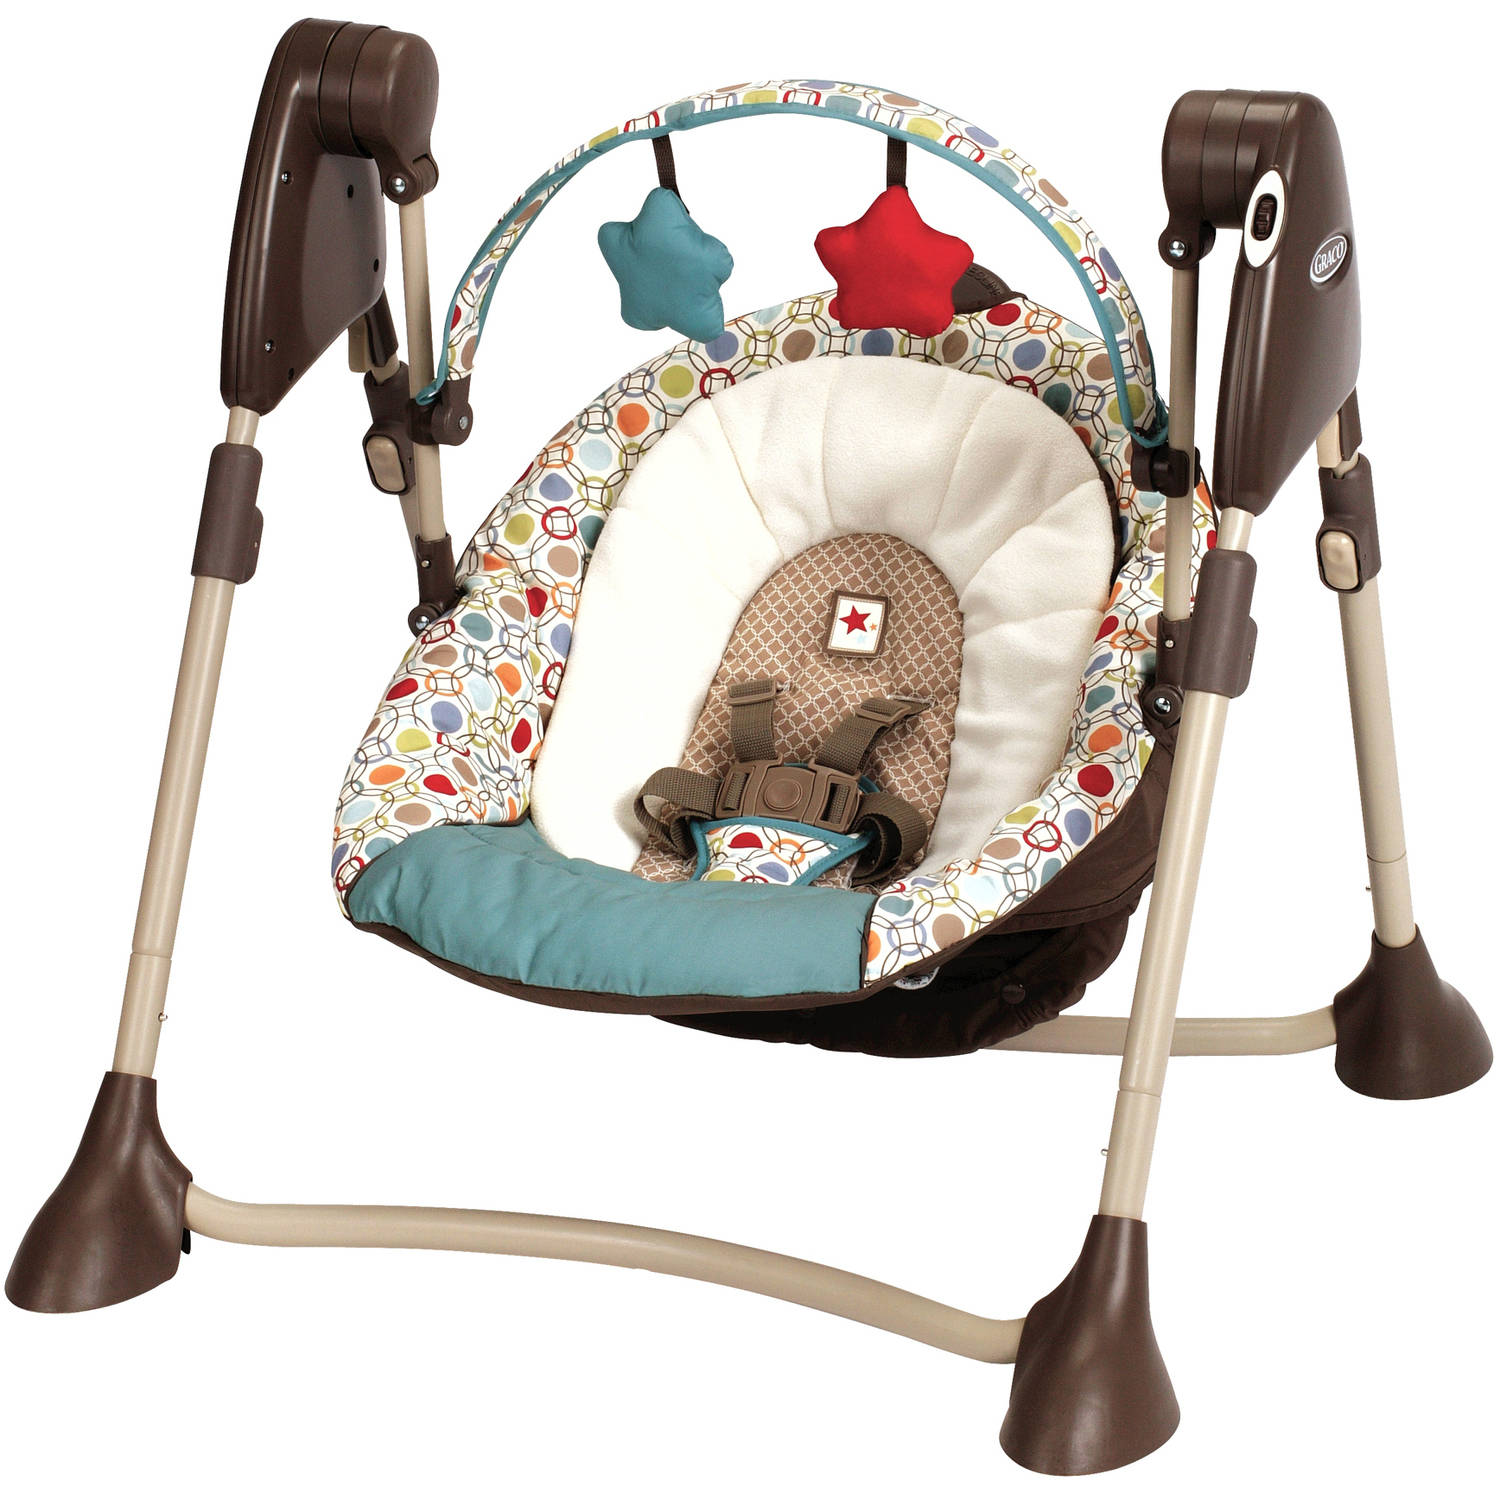 europe for cradle newborn detail infant automatic buy product design swing baby